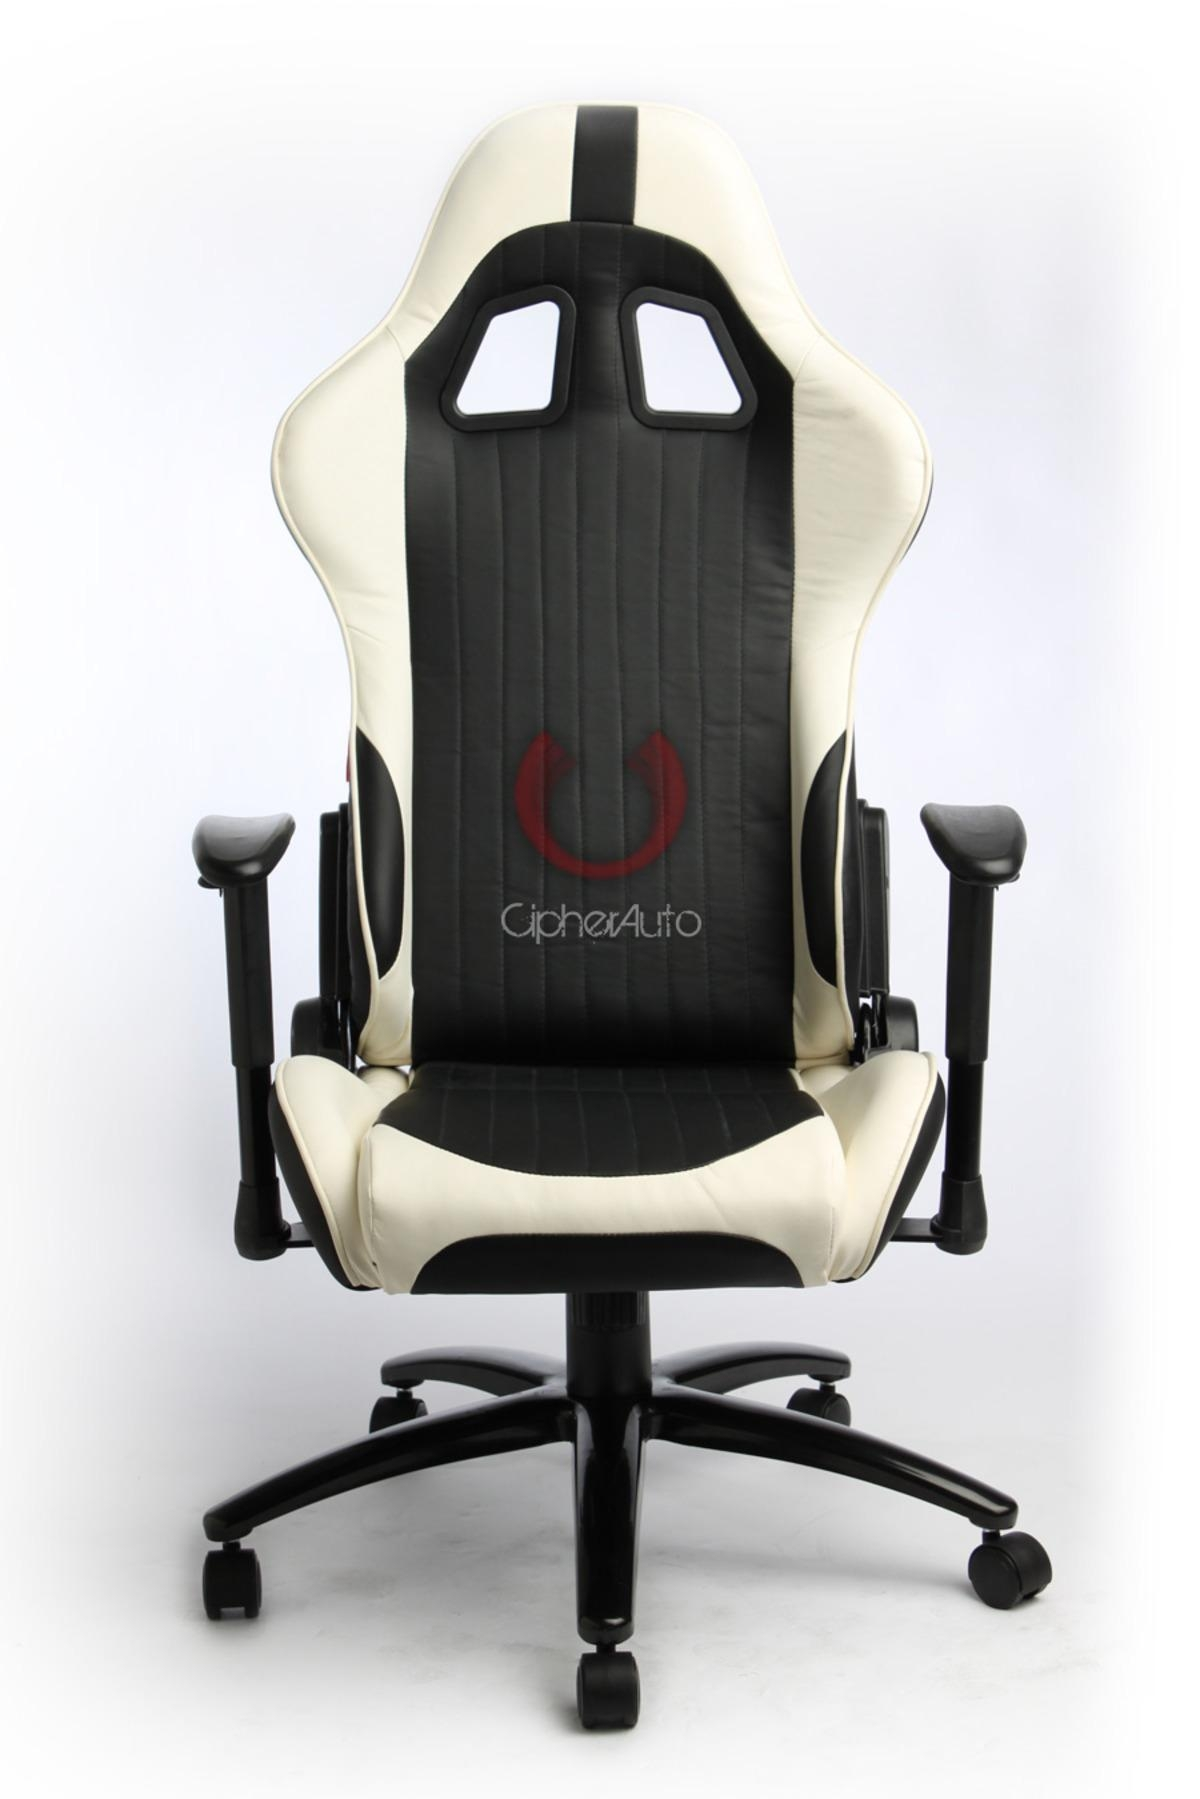 Desk Chairs Gaming | Home Decoration Club In Gaming Sofa Chairs (Image 10 of 20)